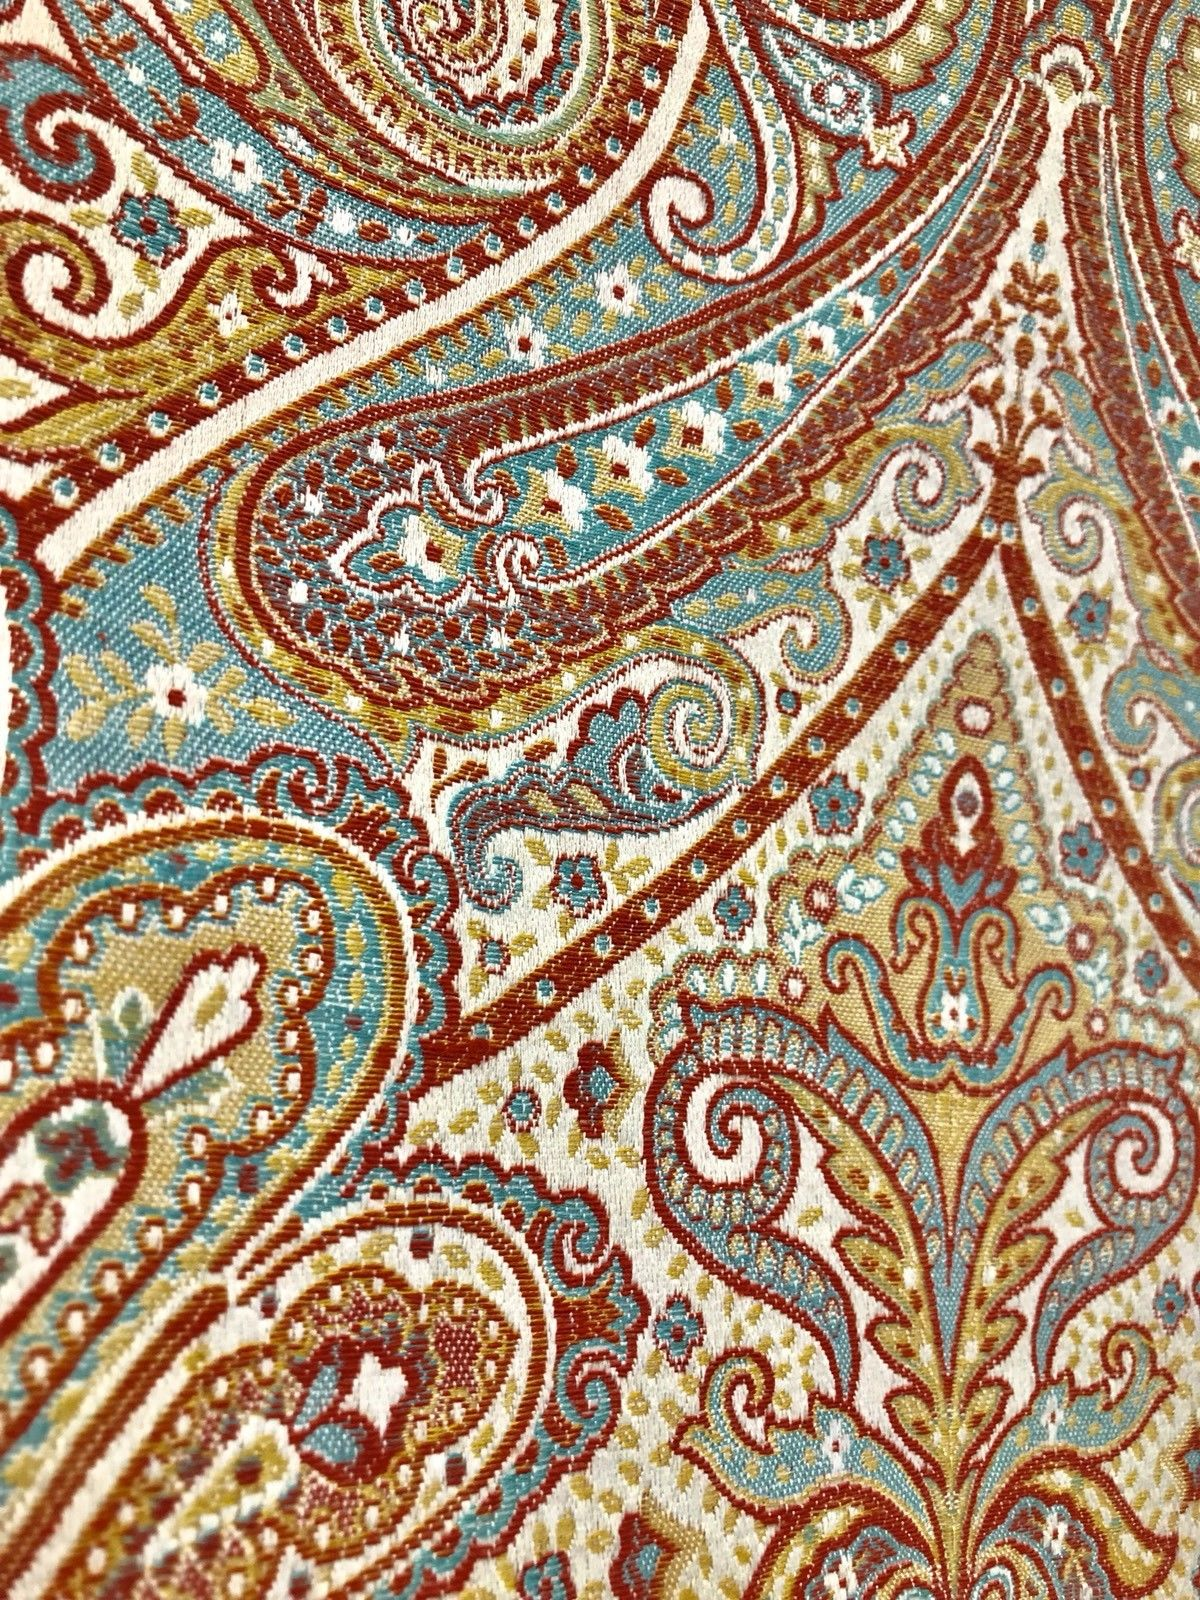 NEW SALE! Antique Inspired Paisley Brocade Satin Fabric- Upholstery Or Drapery - Fancy Styles Fabric Boutique